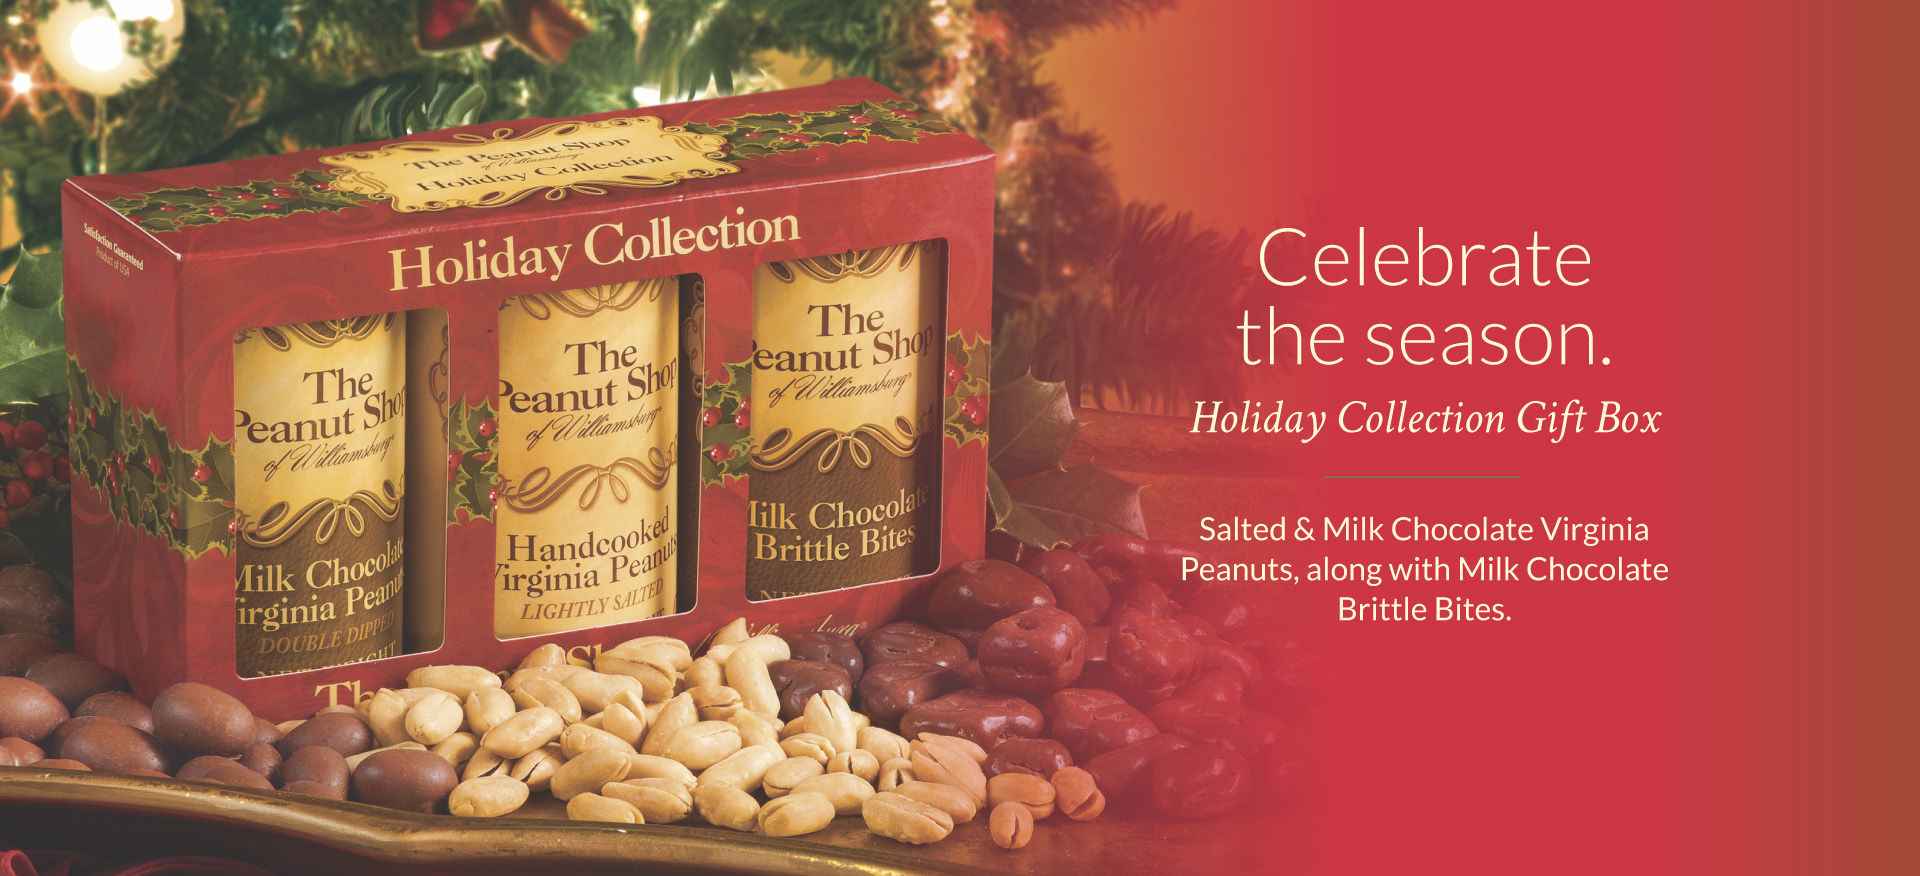 Holiday Gift Box - The Peanut Shop of Williamsburg